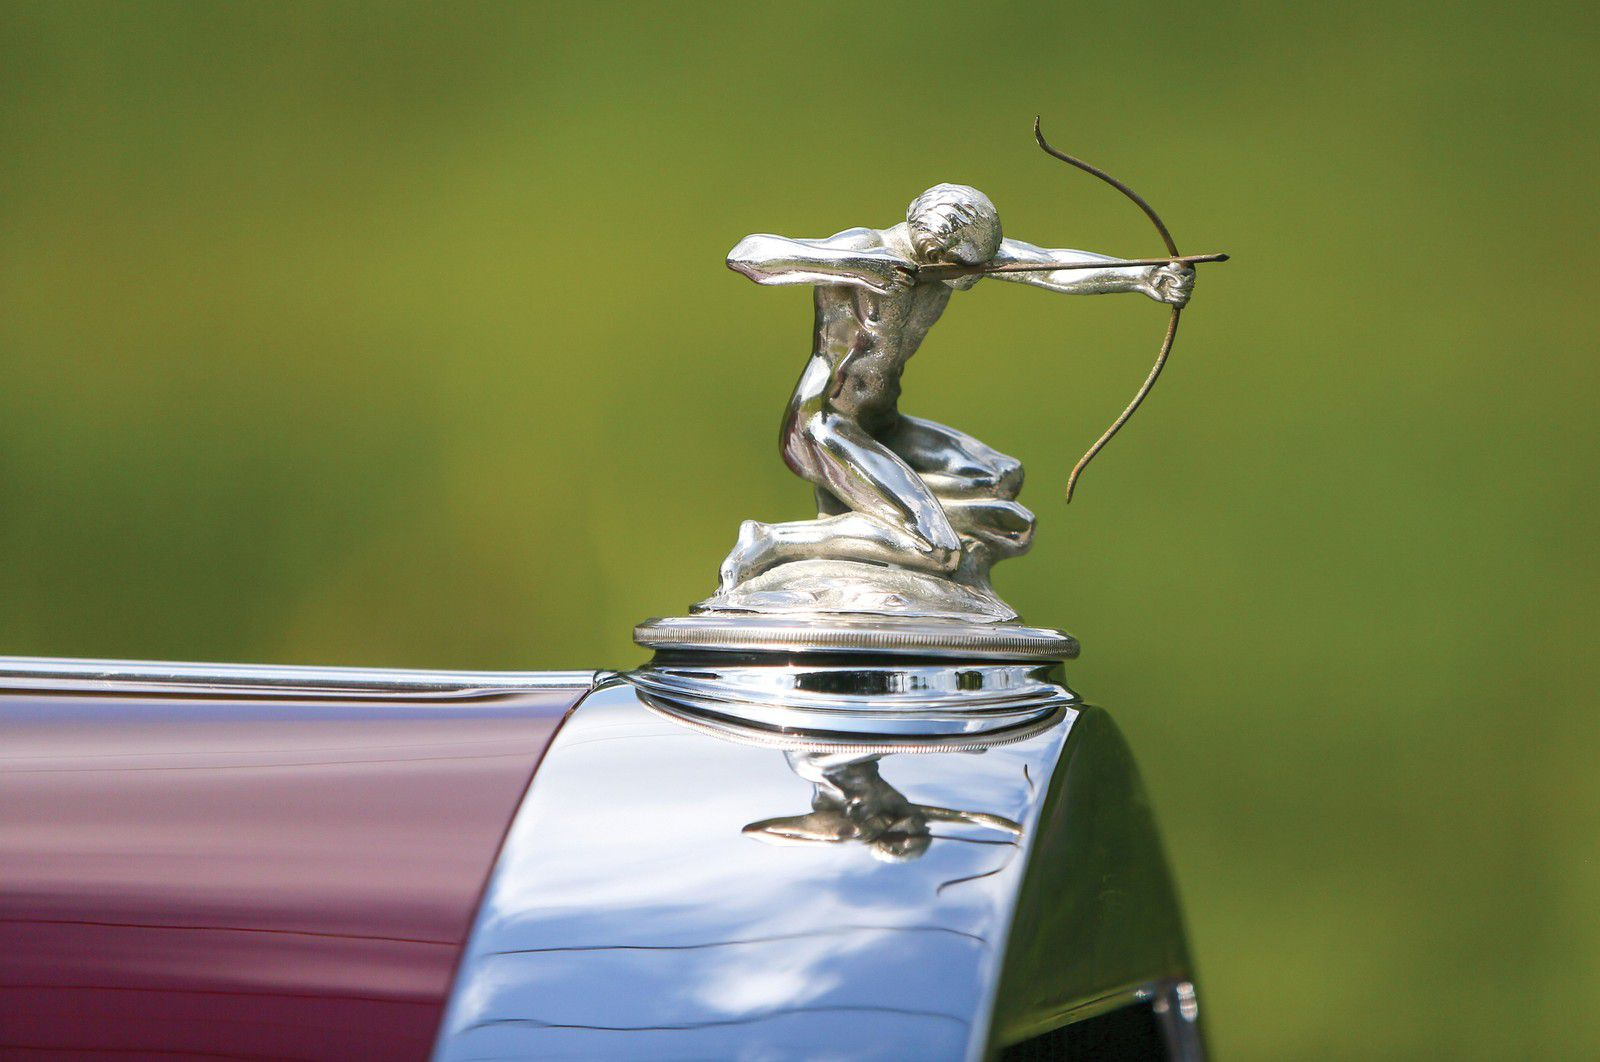 VOITURES DE LEGENDE (1179) : PIERCE ARROW  MODEL 43 5-PASSENGER SEDAN - 1931